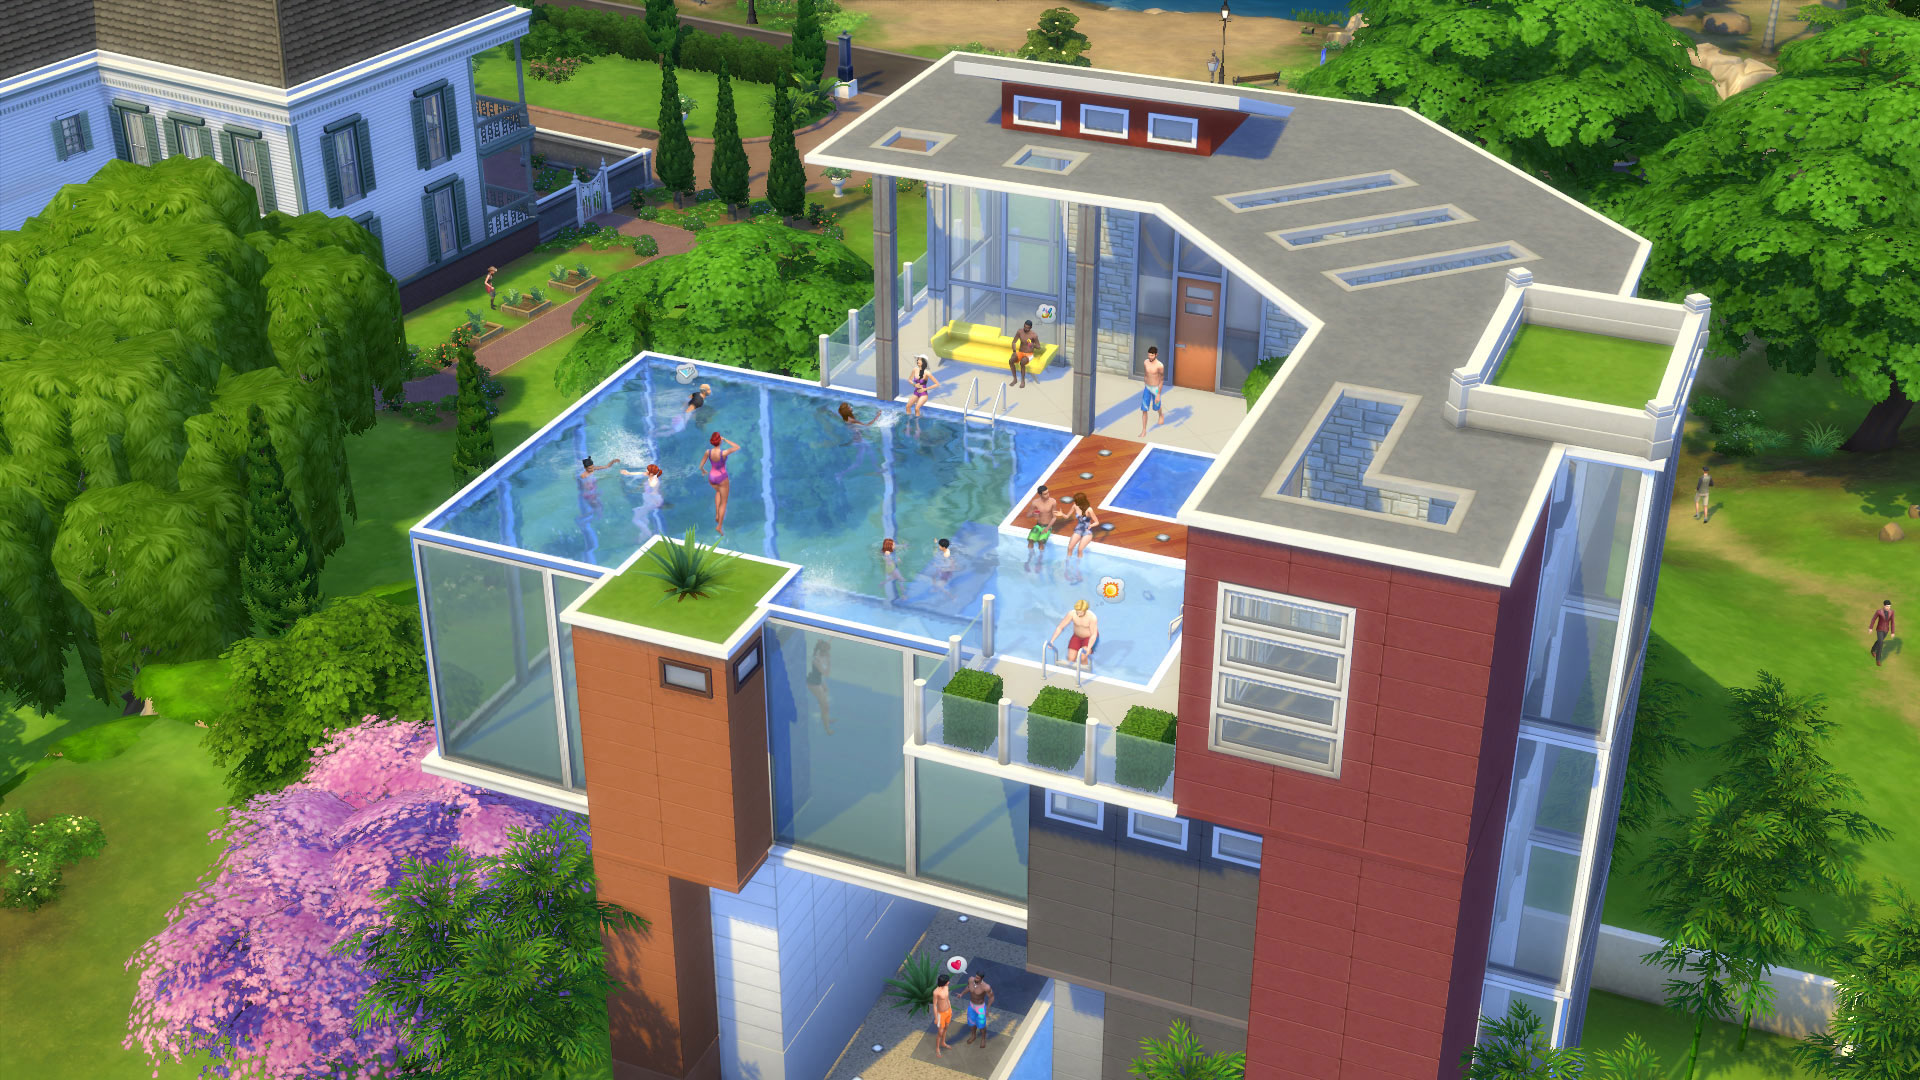 The sims 4 gallery app launches on ios and android for Build house app